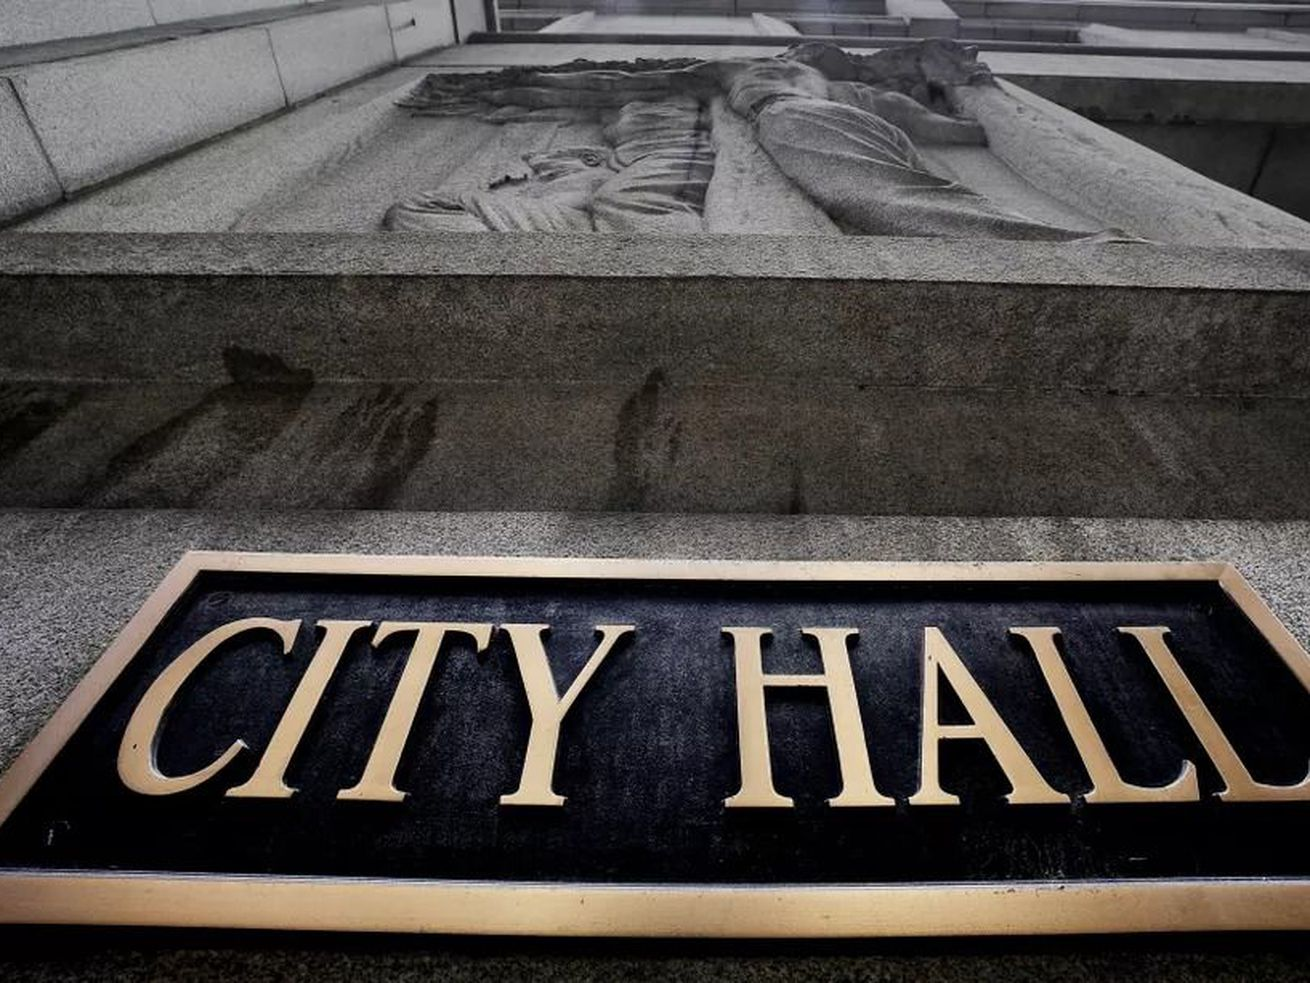 City Hall automatically denying requests for public records, calling them 'non-essential'